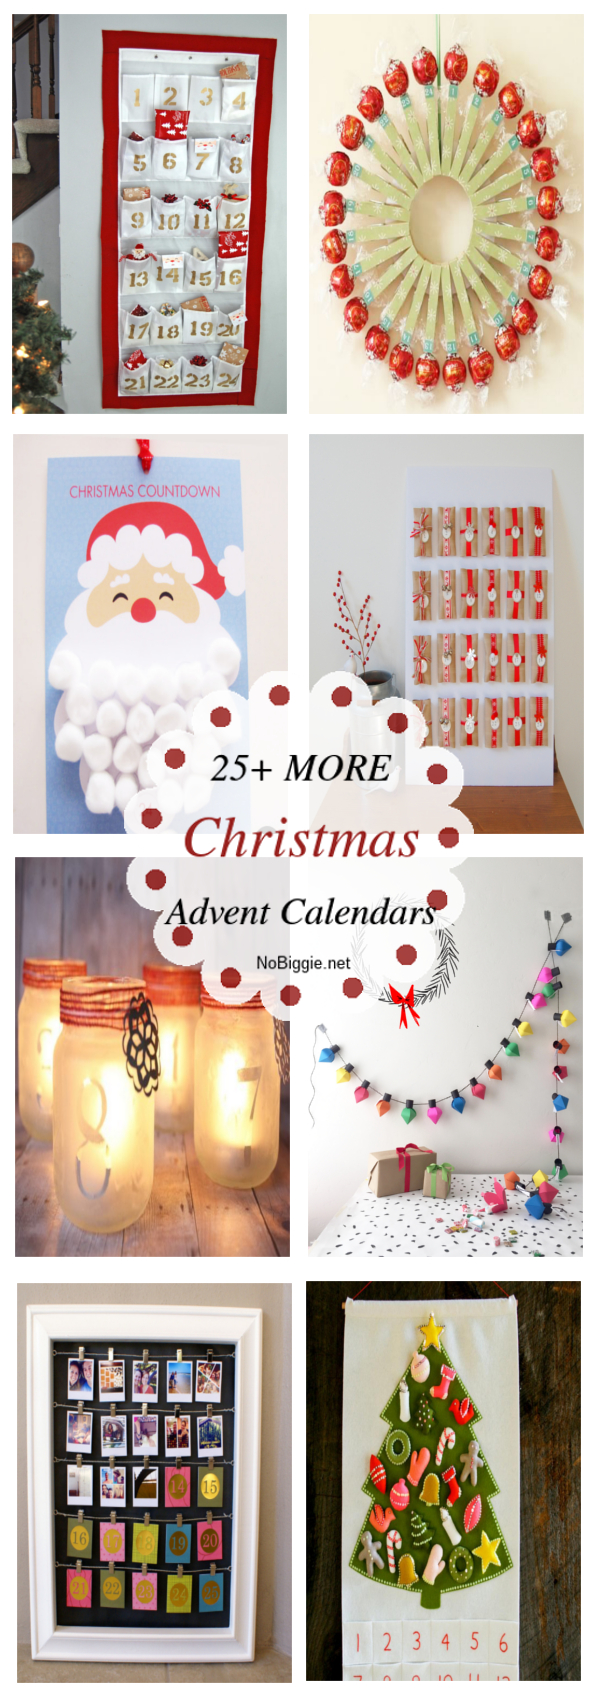 25+ MORE Christmas Advent Calendars | NoBiggie.net